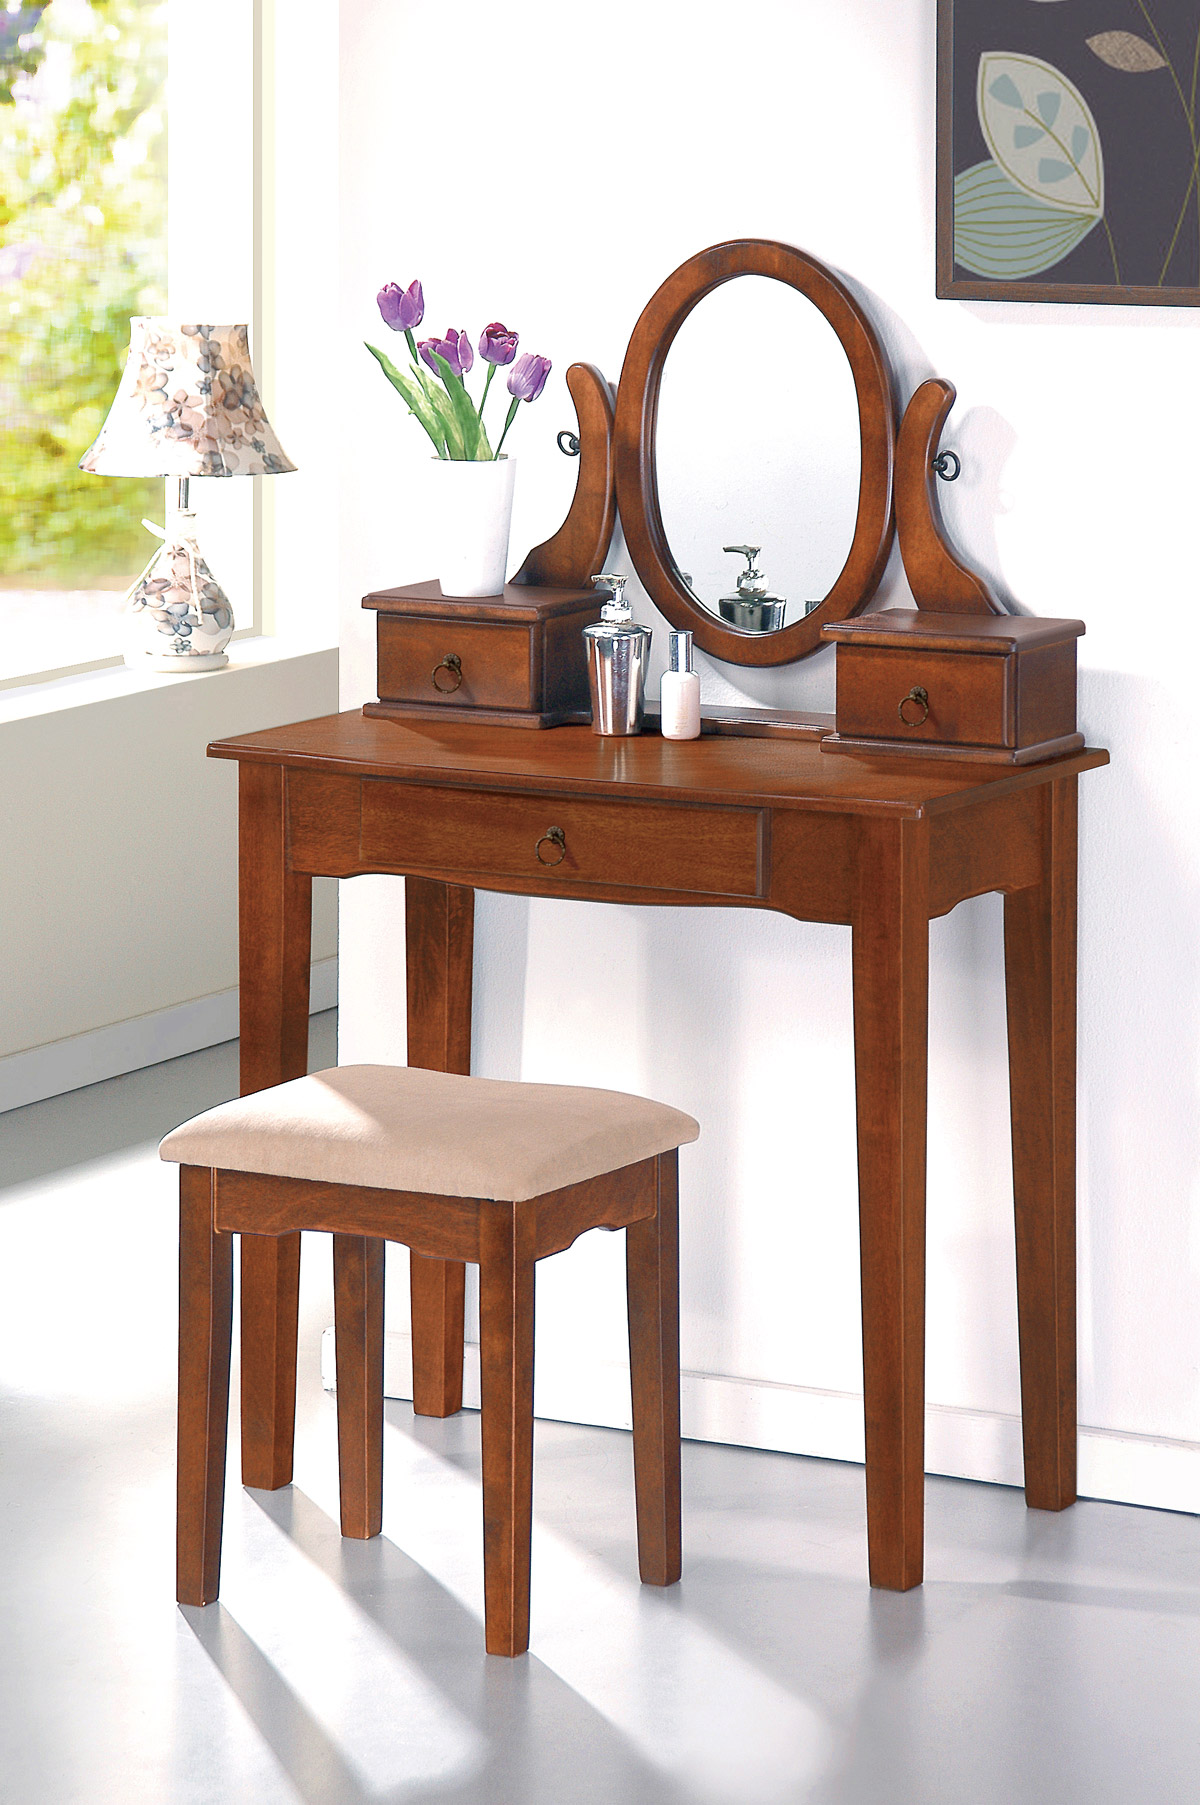 What Is The Best Stool Vanity Set